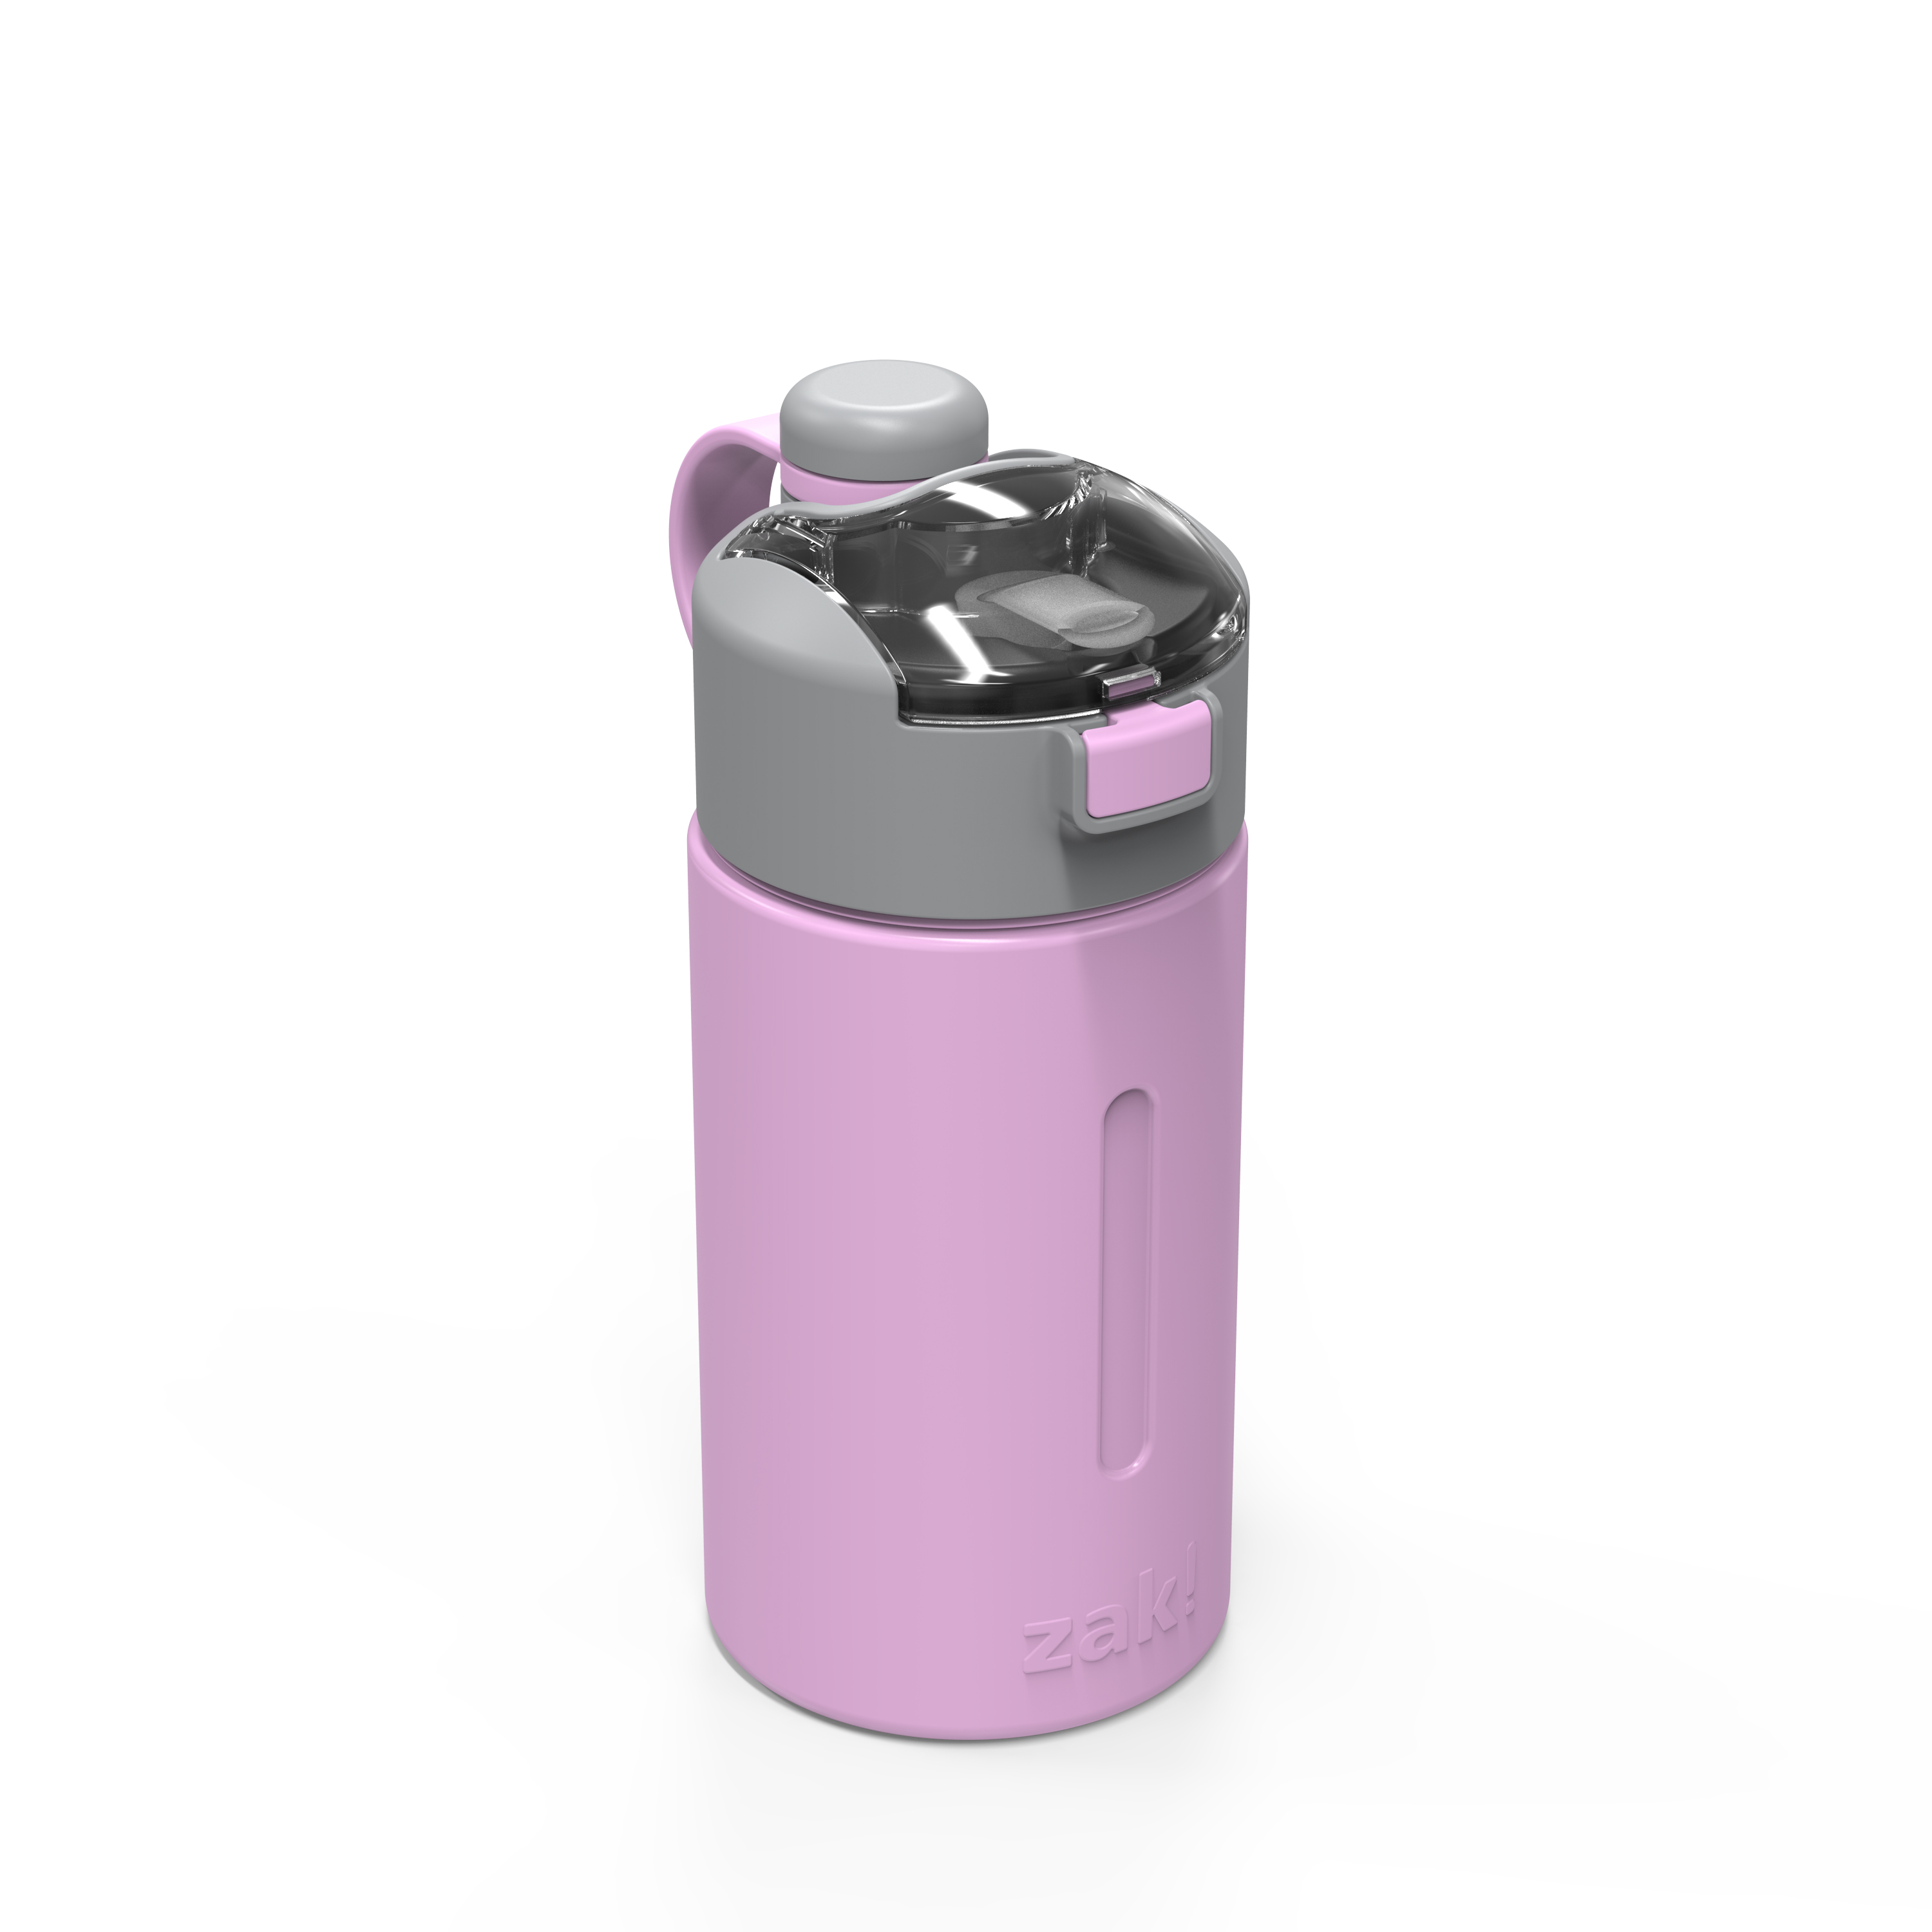 Genesis 12 ounce Vacuum Insulated Stainless Steel Tumbler, Lilac slideshow image 3